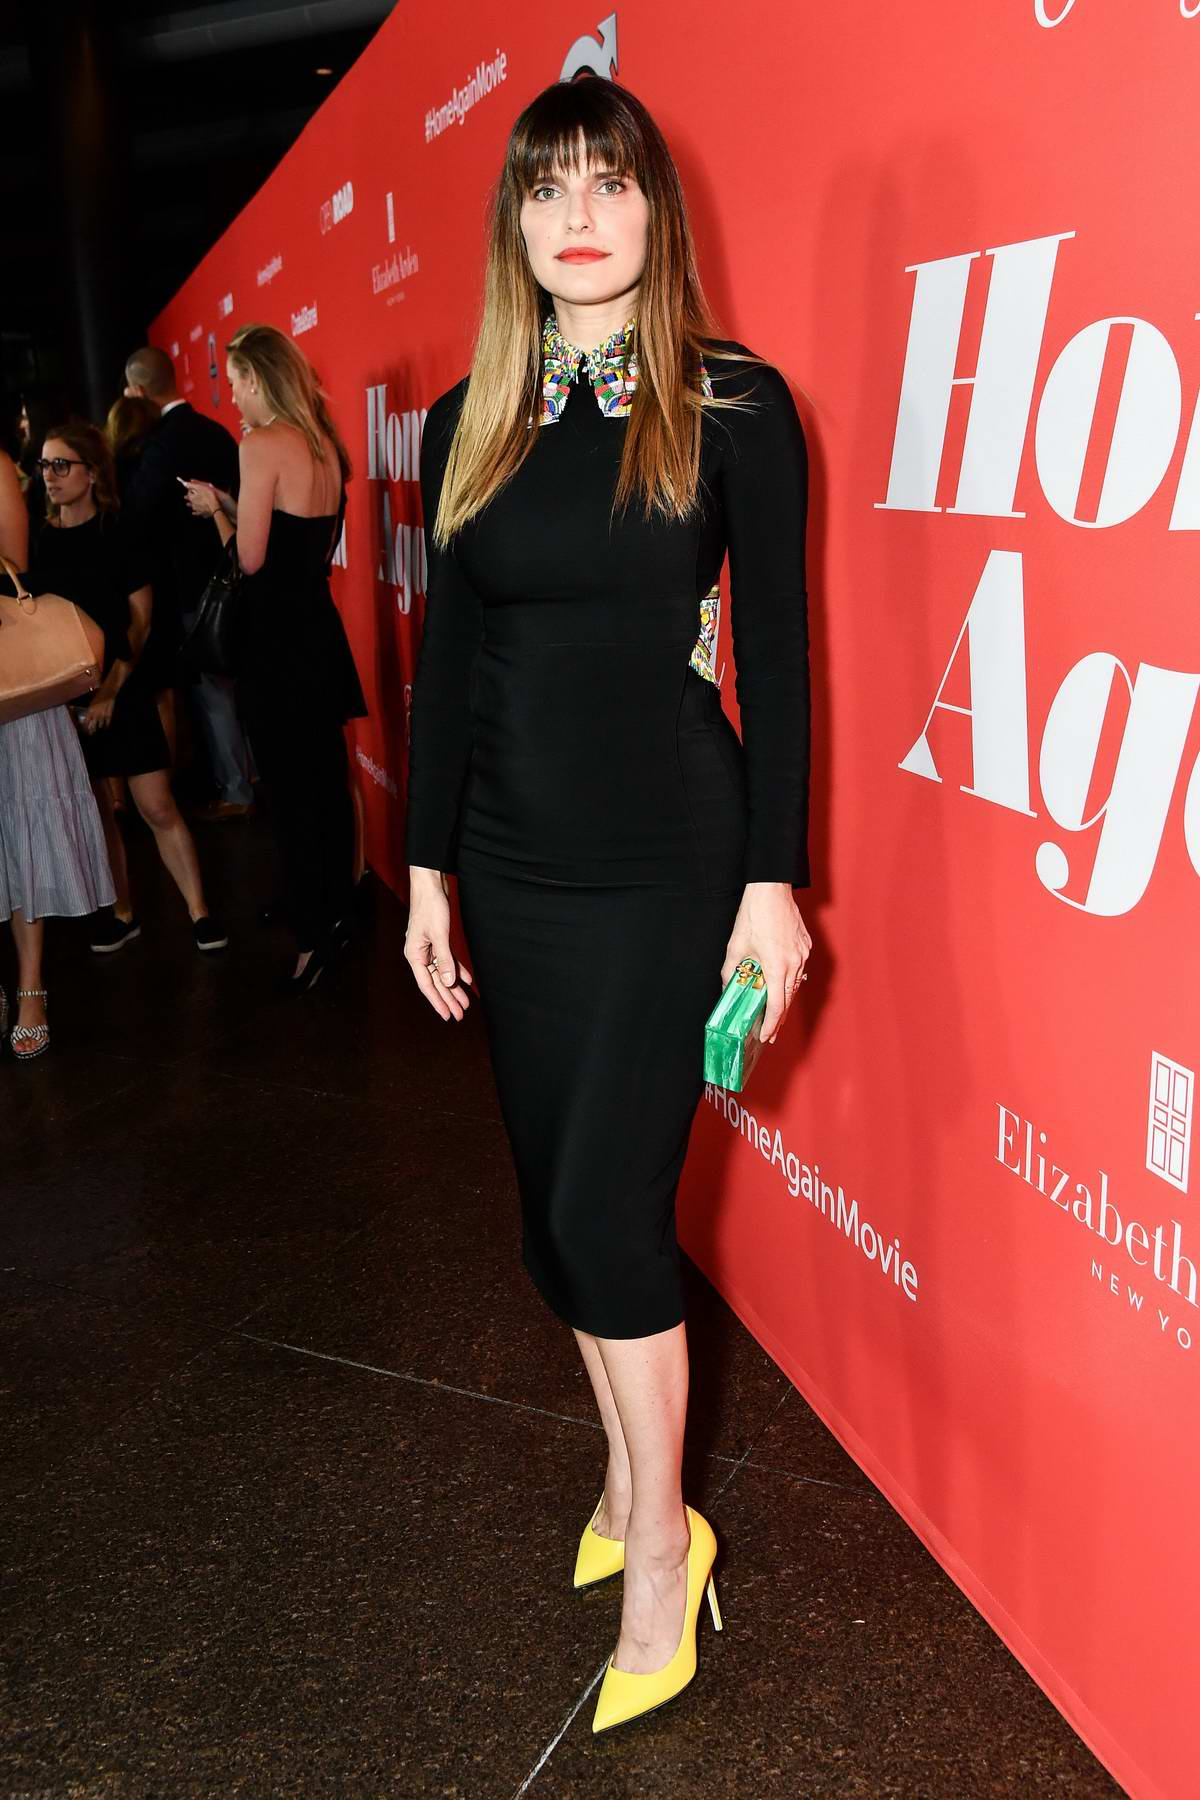 Lake Bell at the premiere of 'Home Again' in Los Angeles